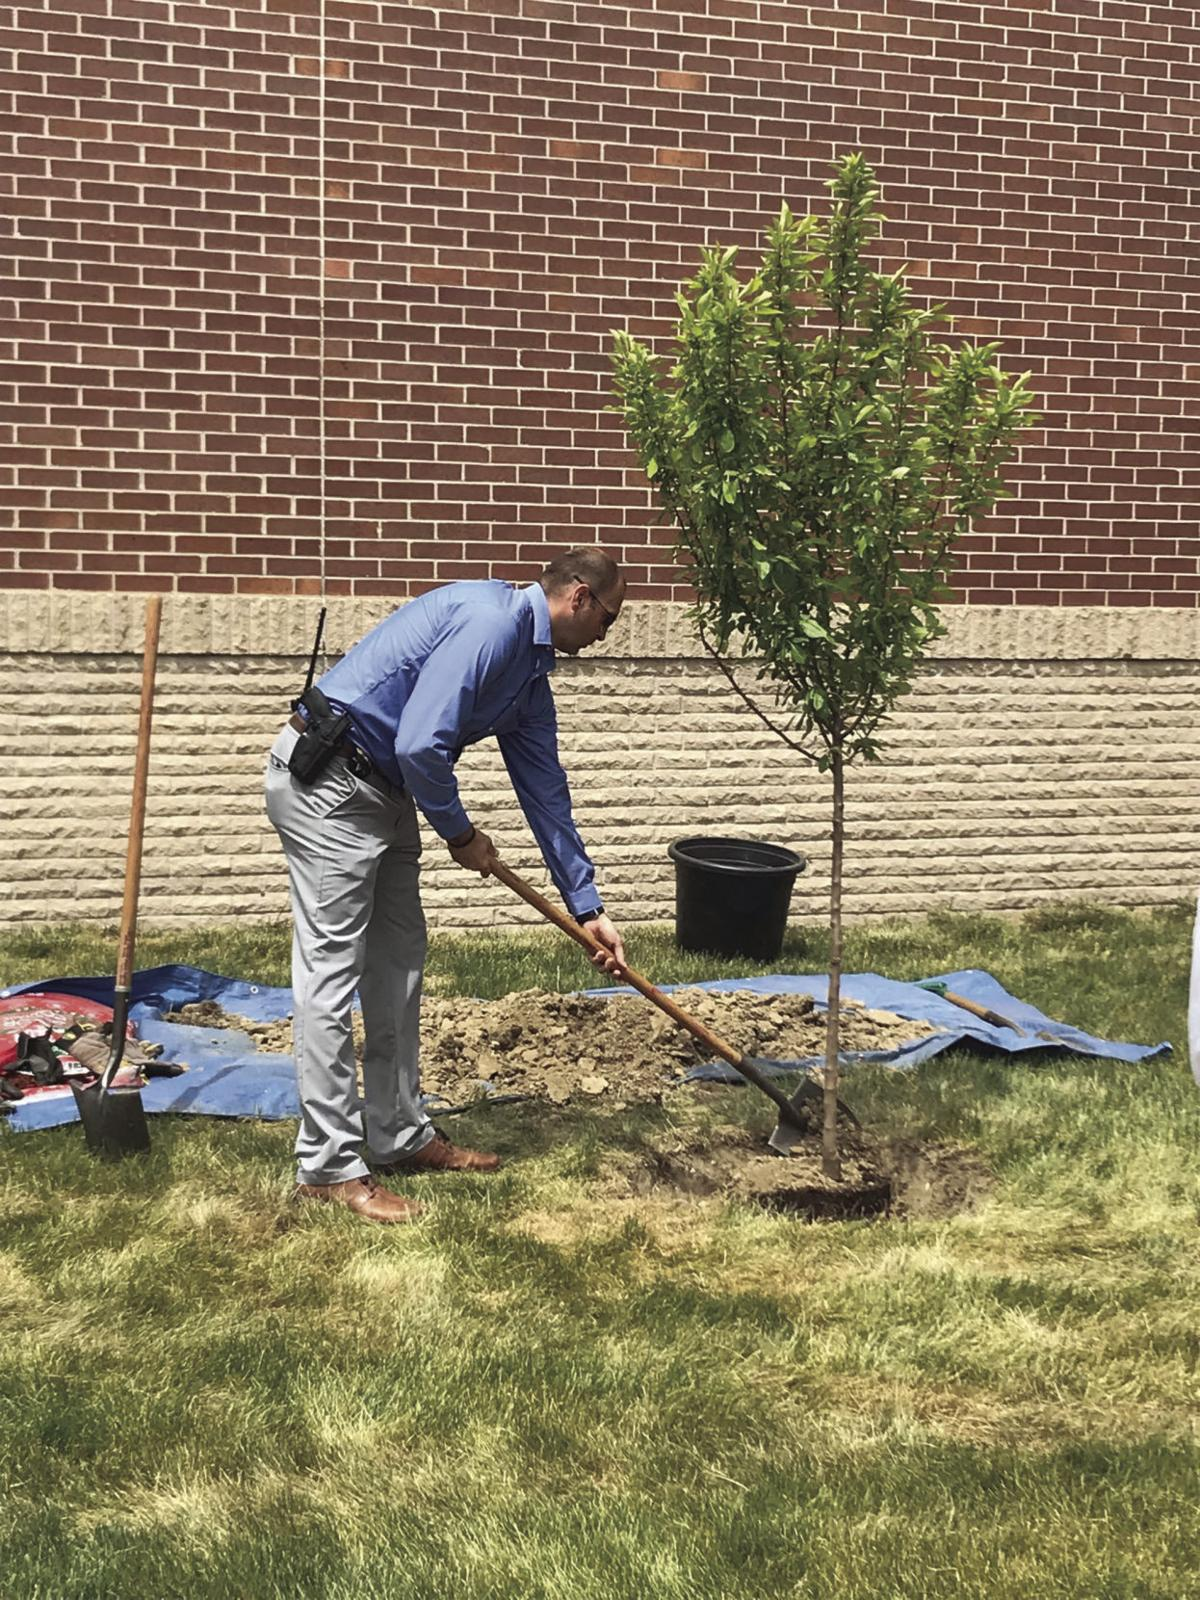 Tree planted at Pottawattamie County Sheriff s fice to honor